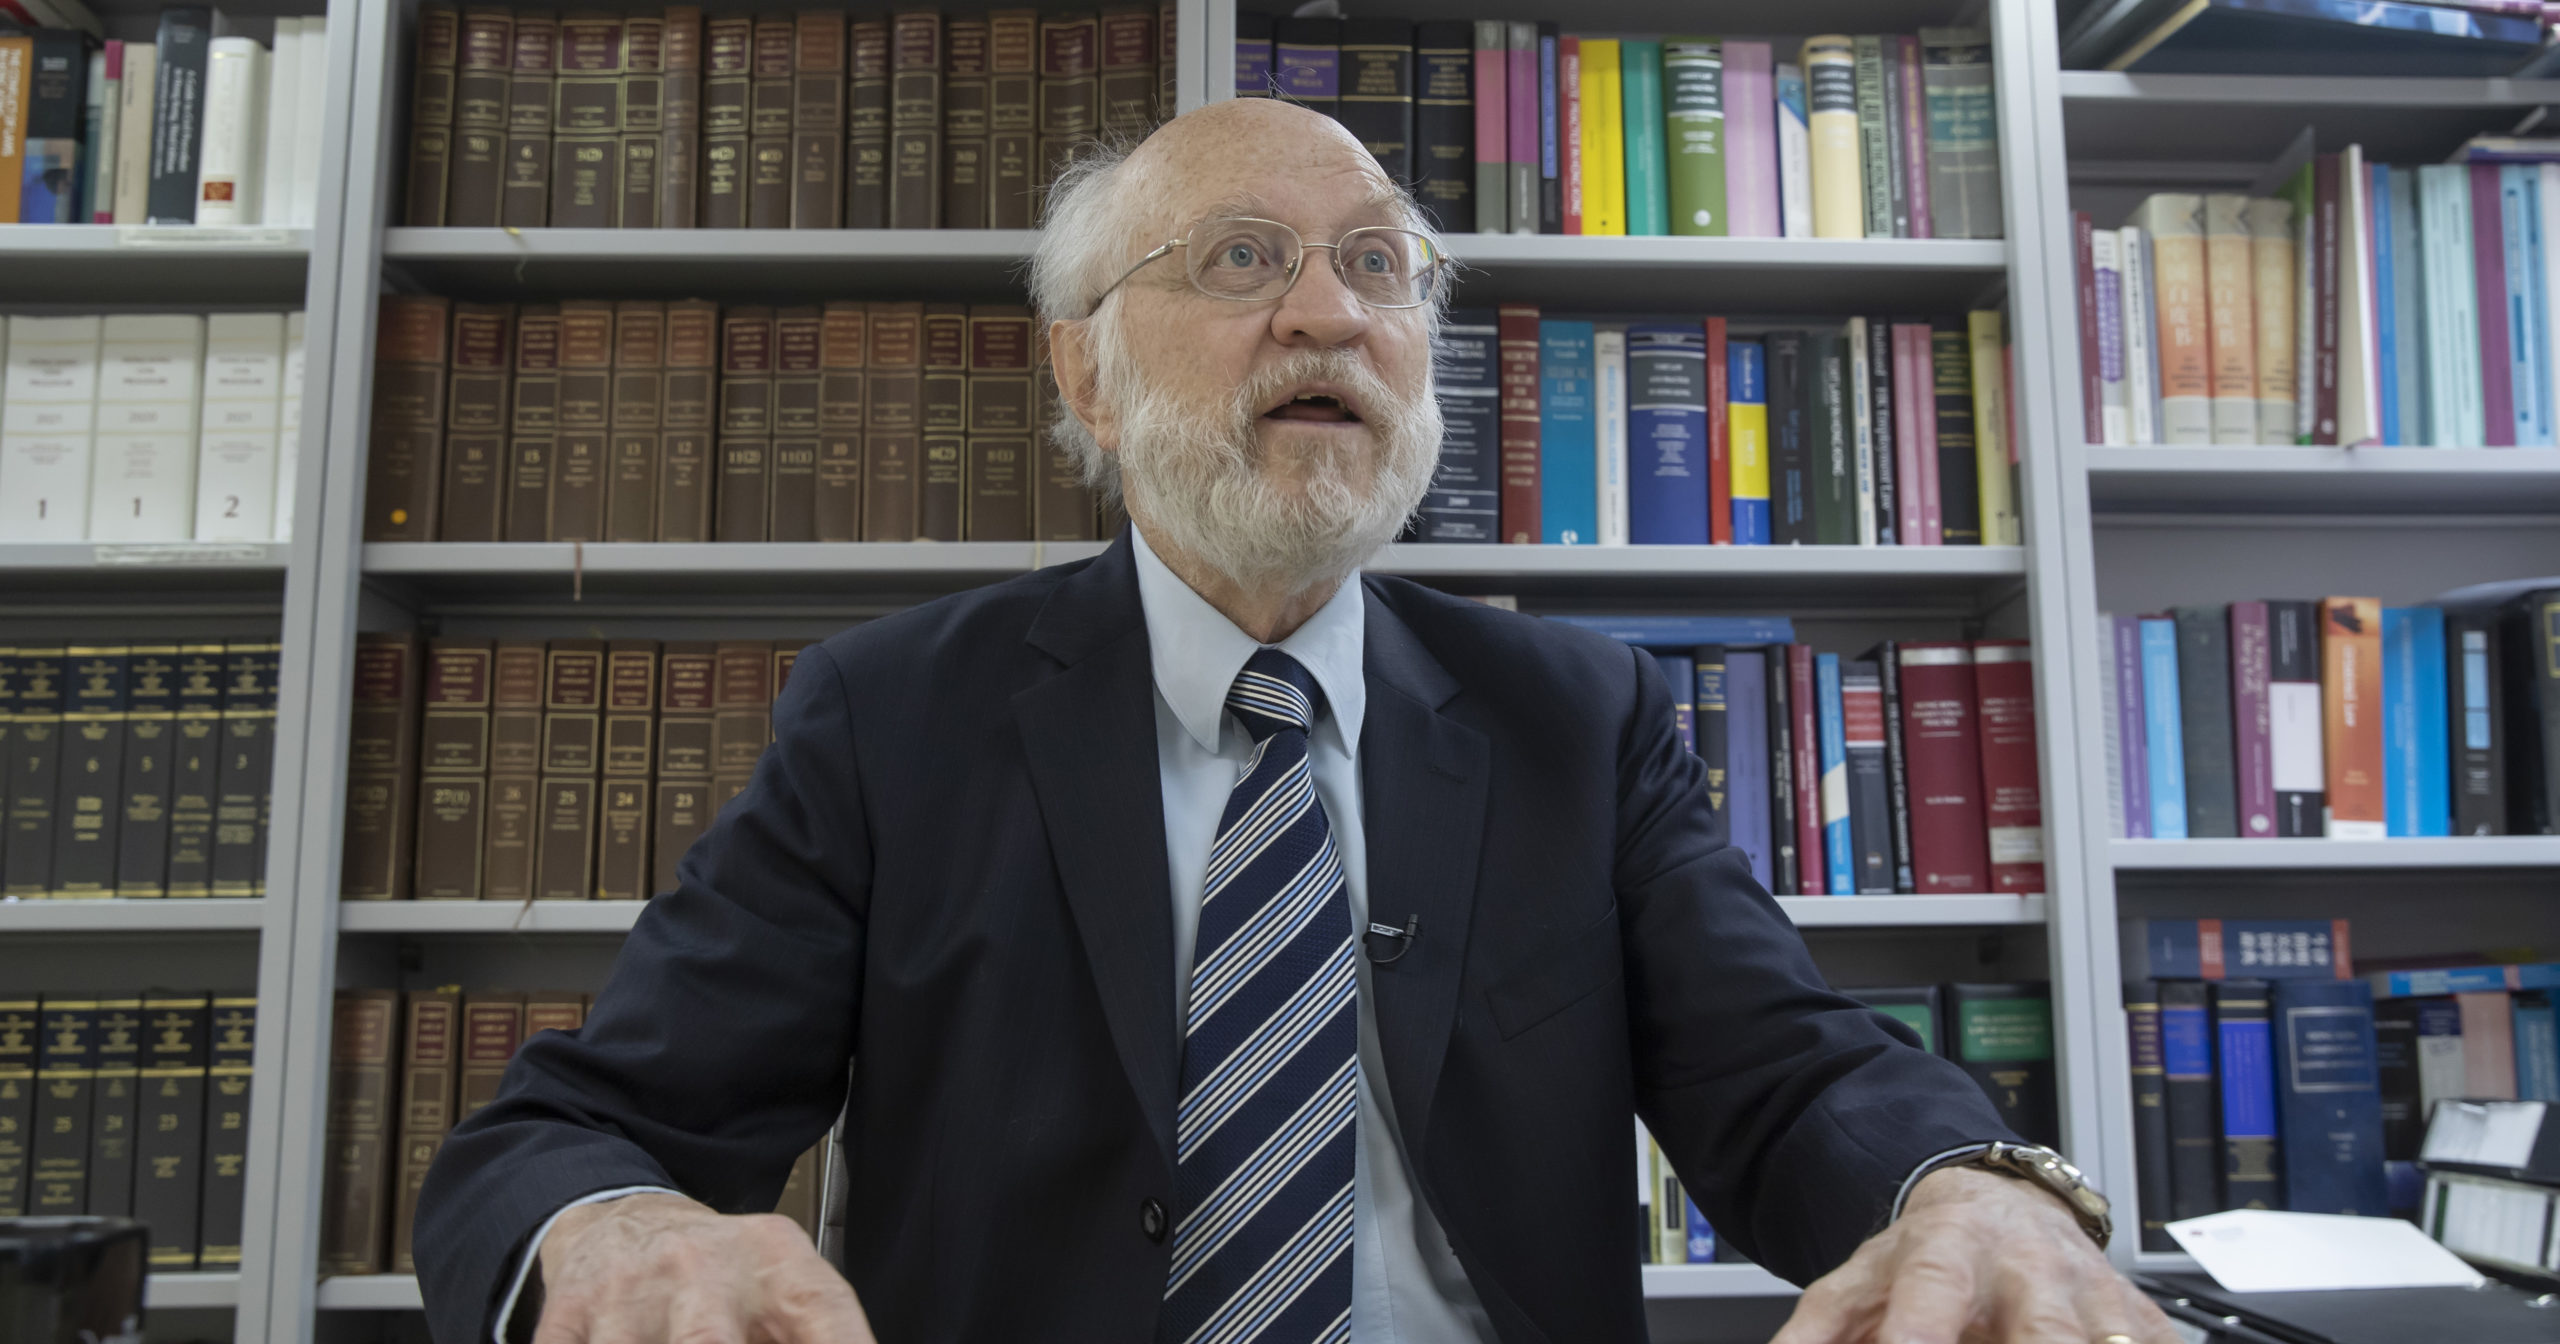 John Clancey, an American lawyer who became the first foreigner arrested under Hong Kong's national security law, speaks during an interview in Hong Kong on Jan. 15, 2021.